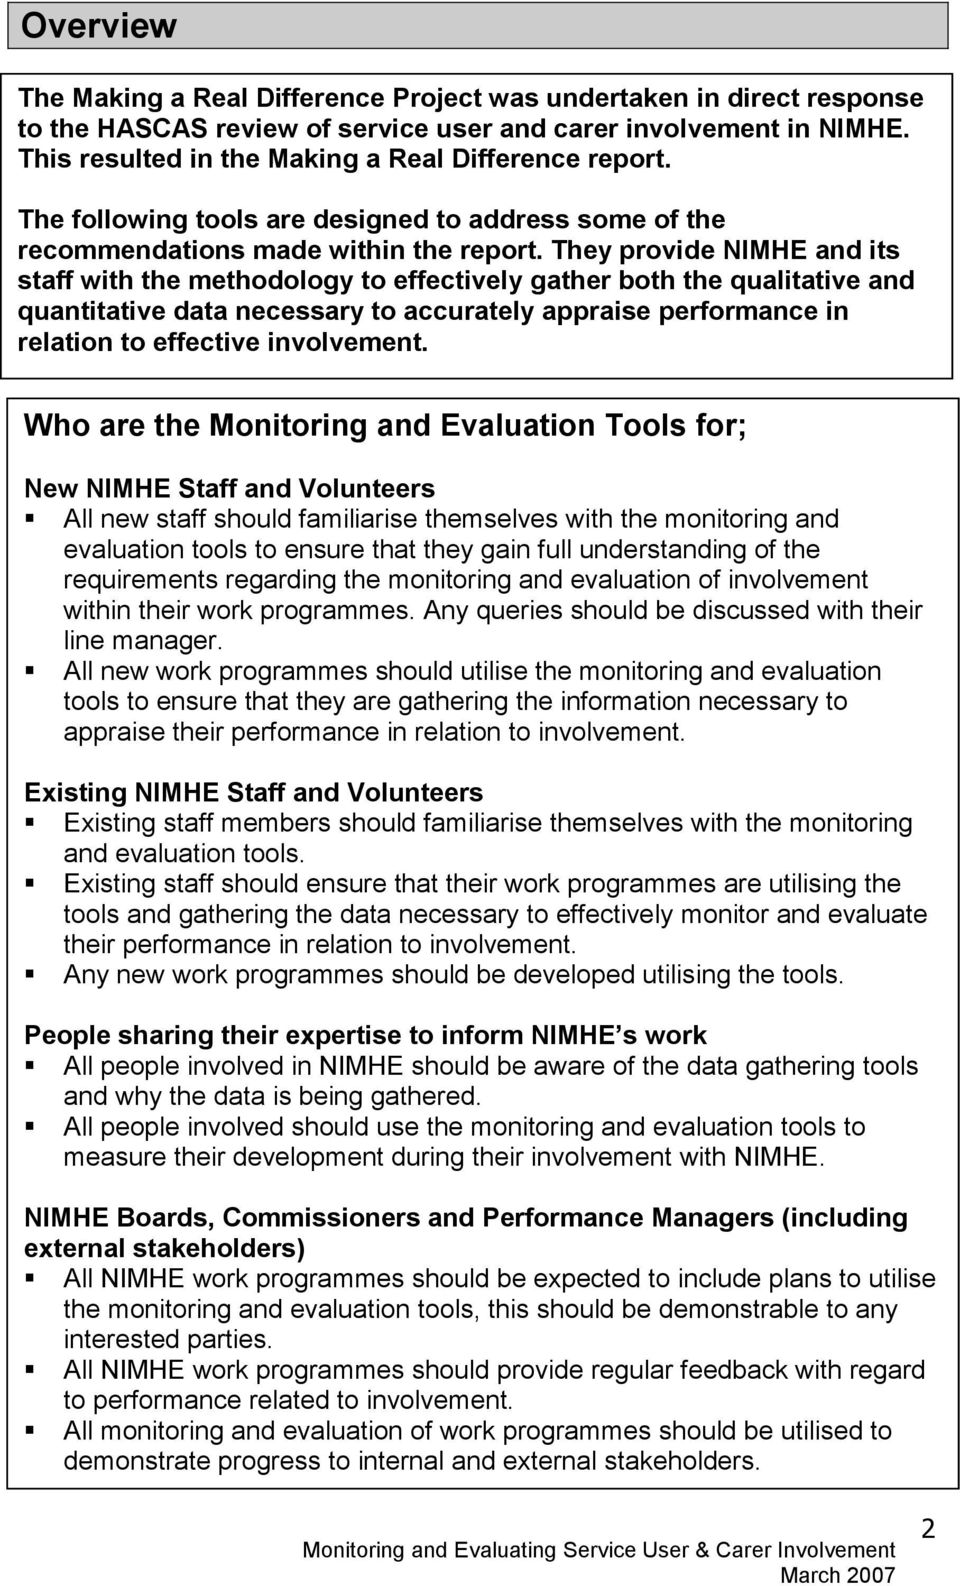 They provide NIMHE and its staff with the methodology to effectively gather both the qualitative and quantitative data necessary to accurately appraise performance in relation to effective